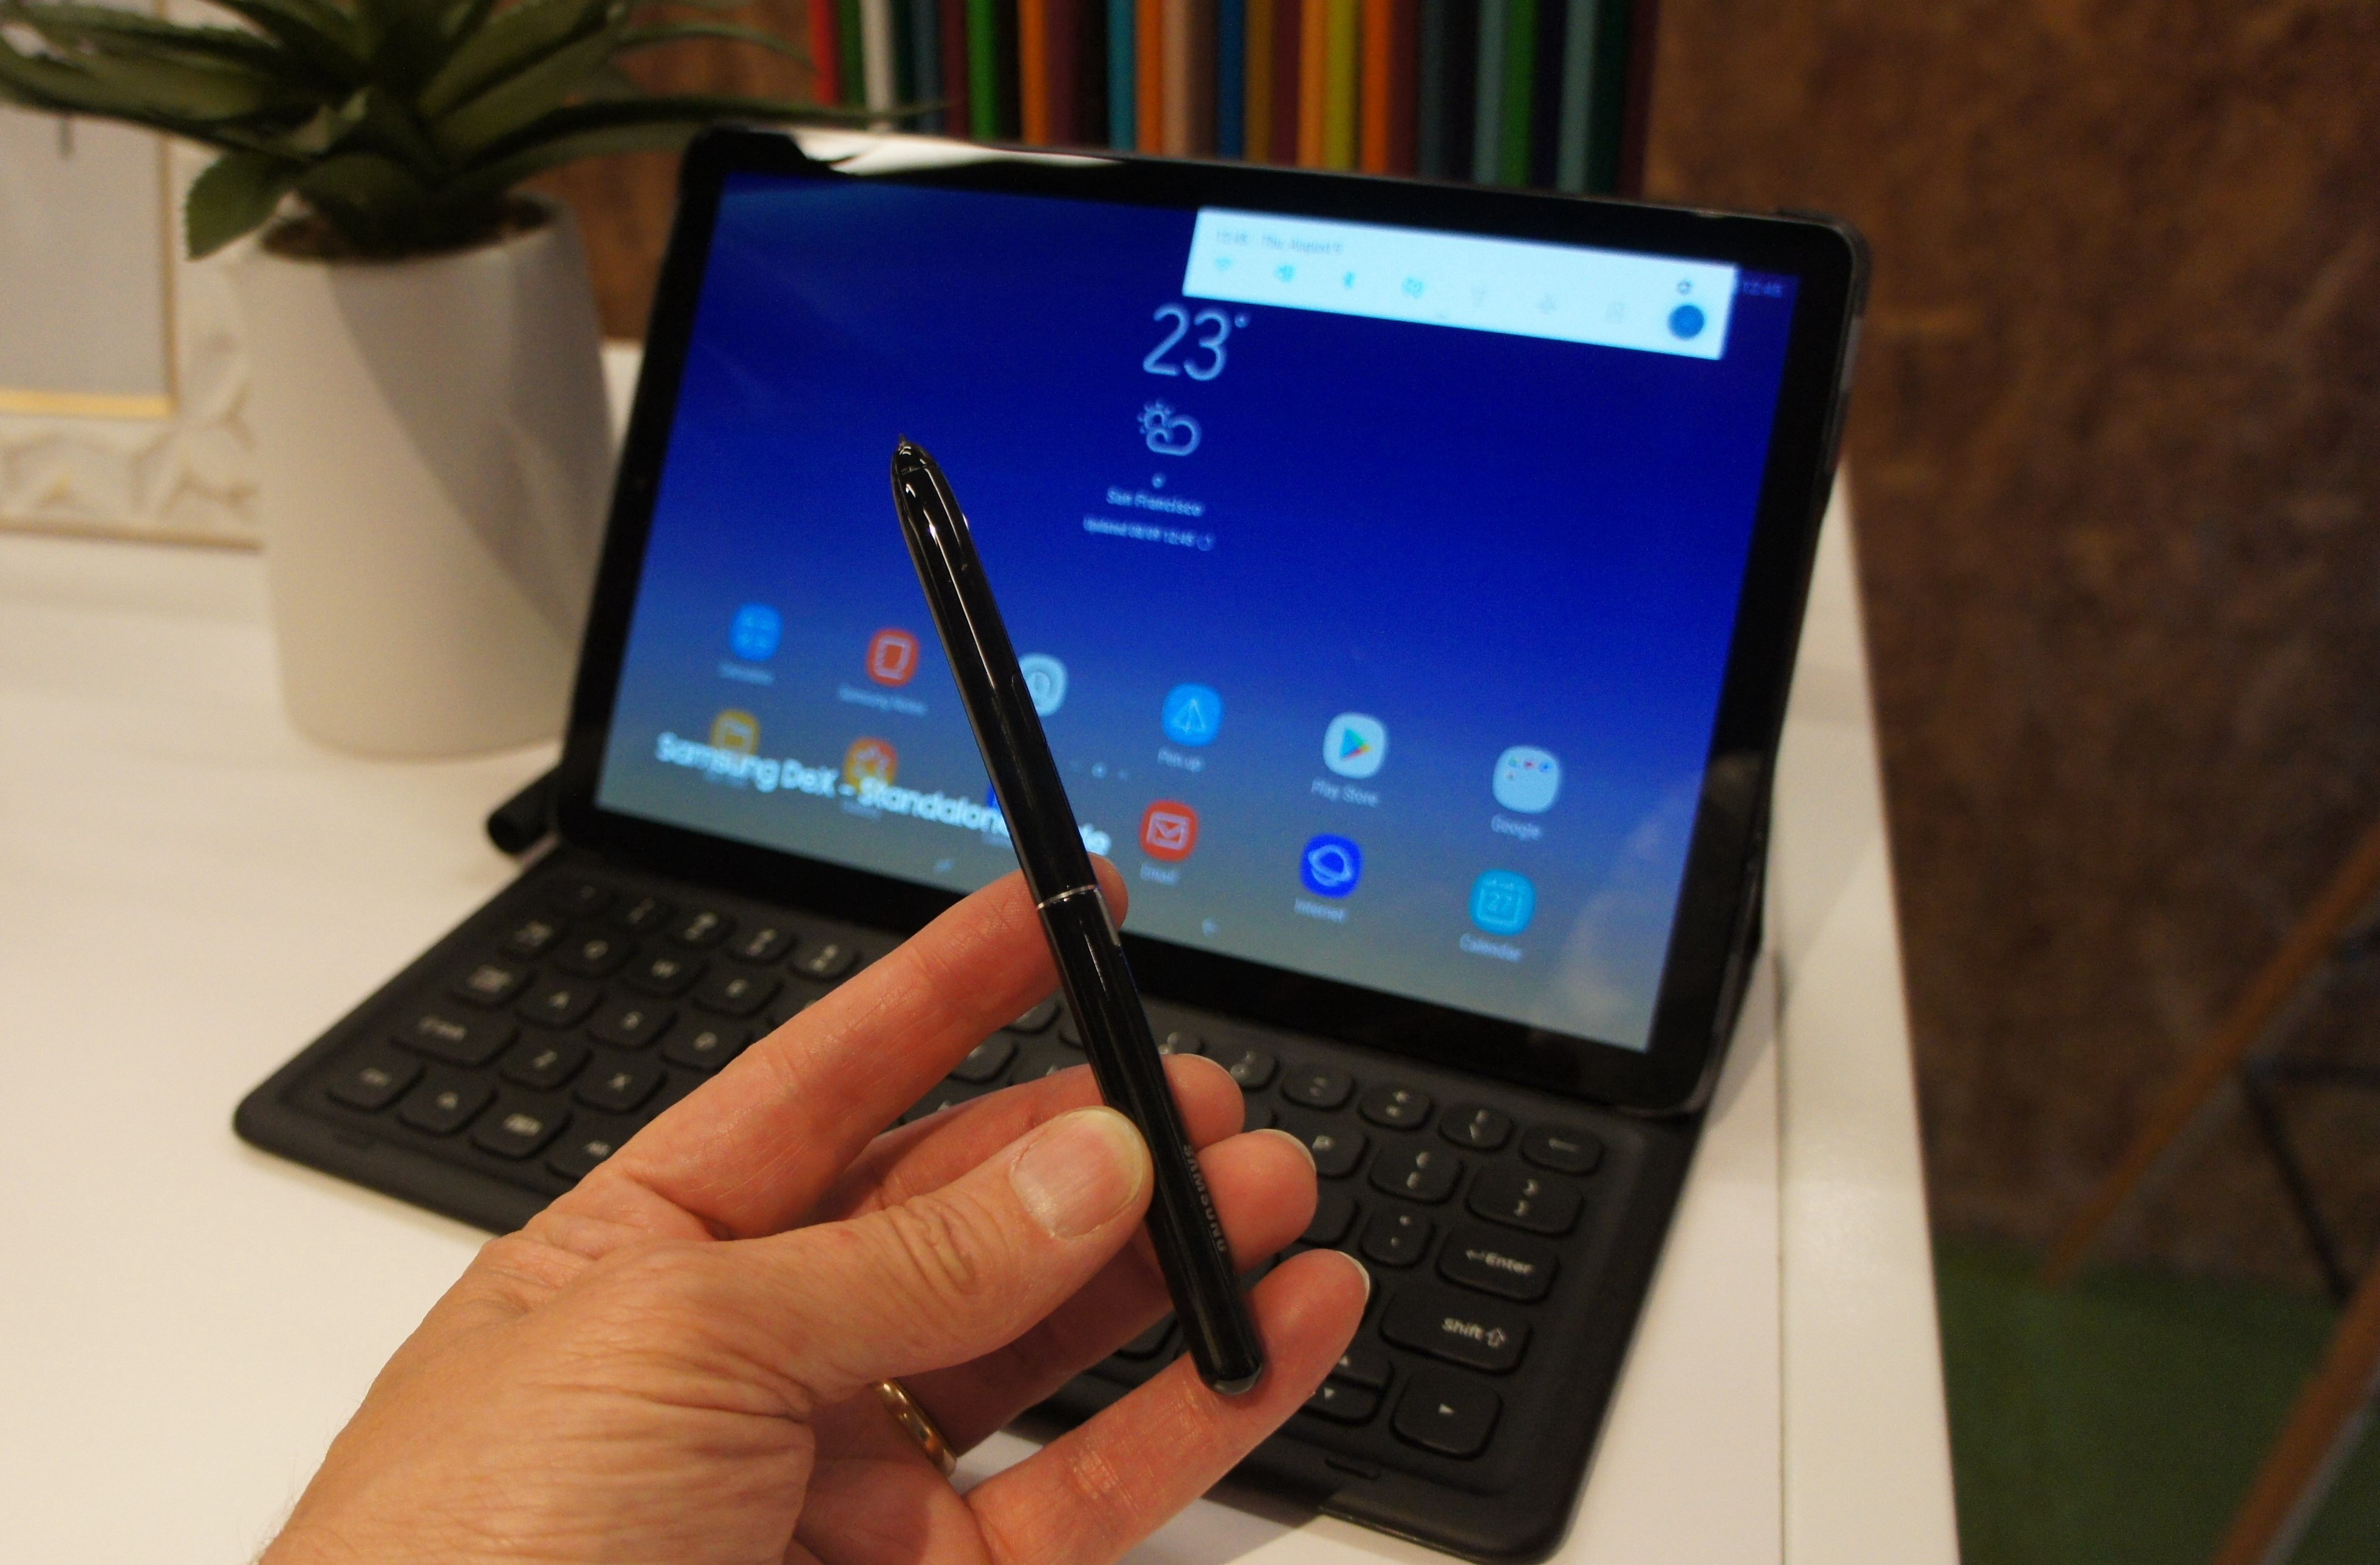 The new Samsung Galaxy Tab S4 puts Android to work - Lance